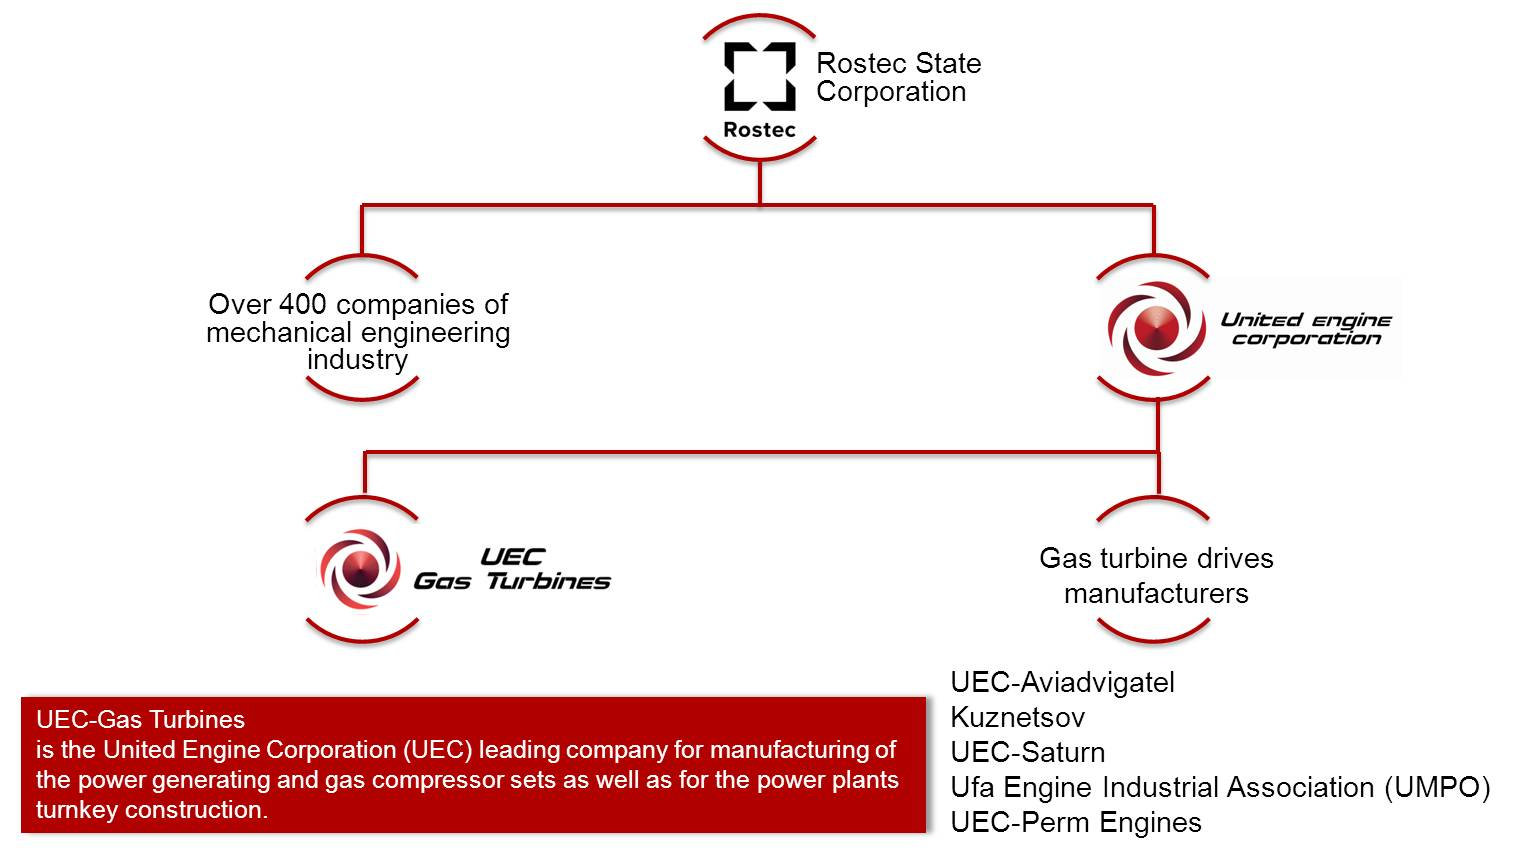 UEC – Gas Turbines in  ROSTEC structure